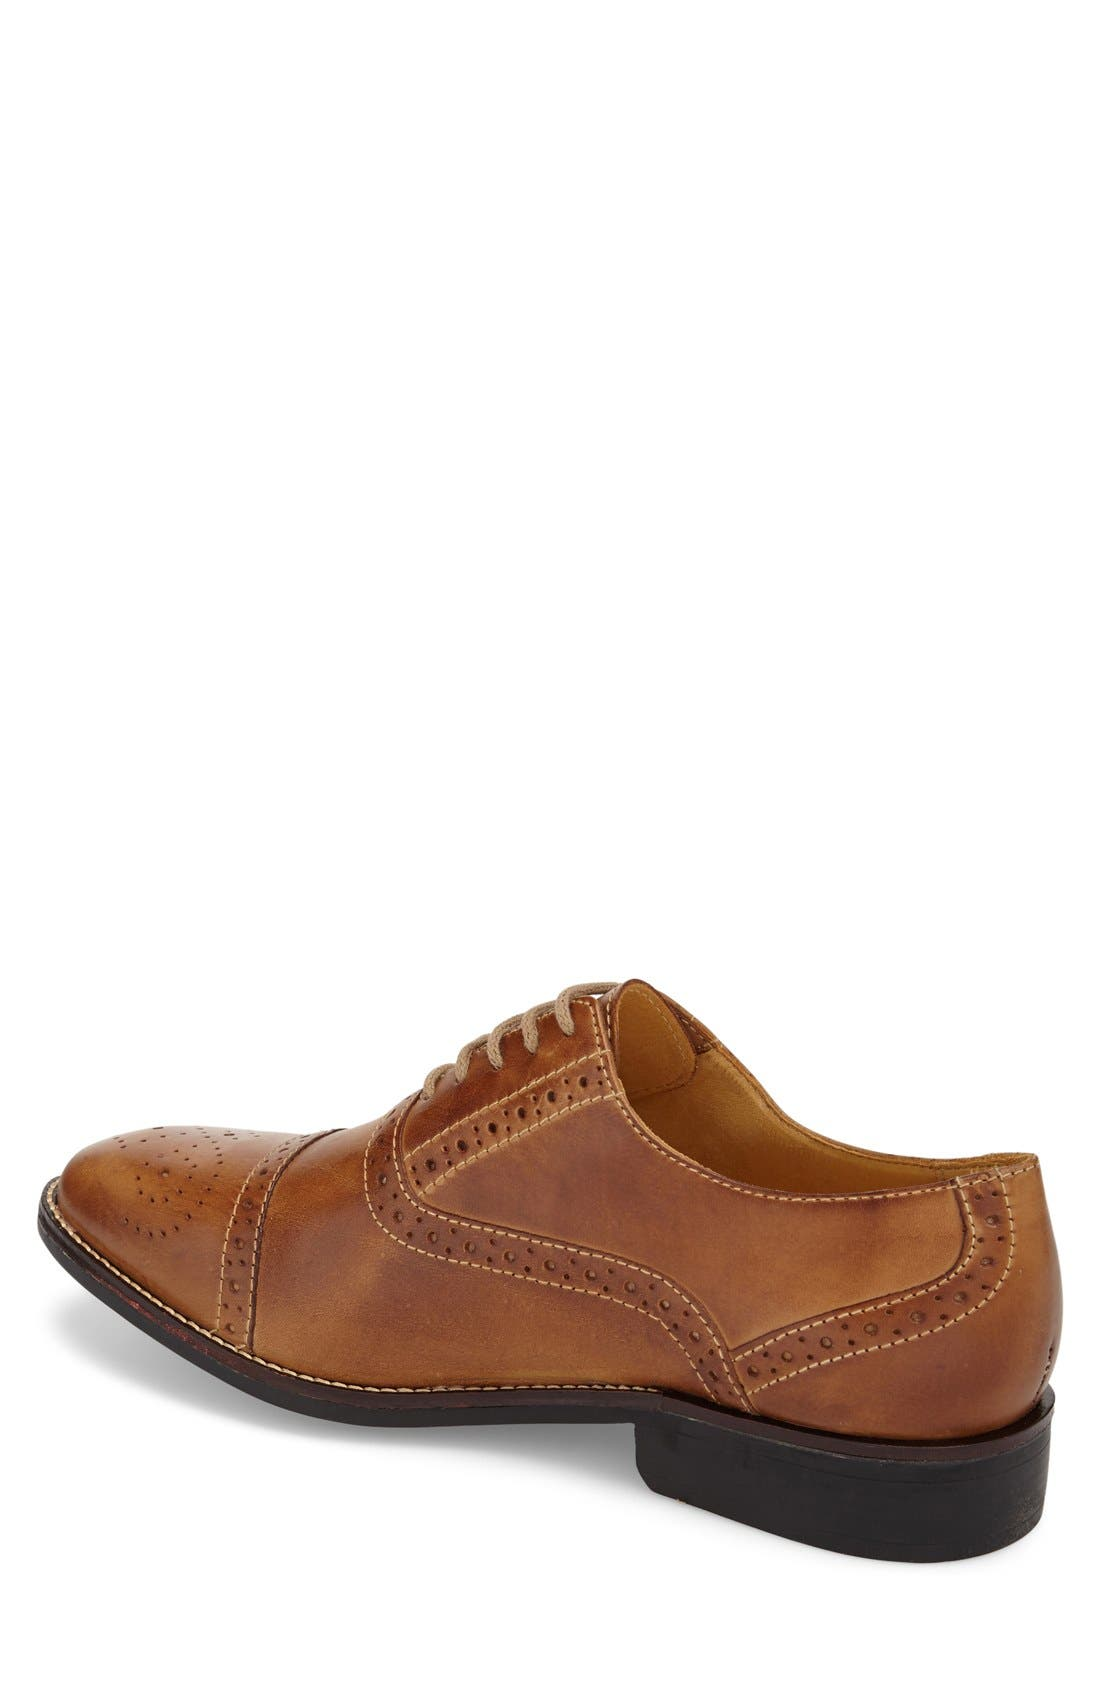 'Barrett' Cap Toe Oxford,                             Alternate thumbnail 2, color,                             Tan